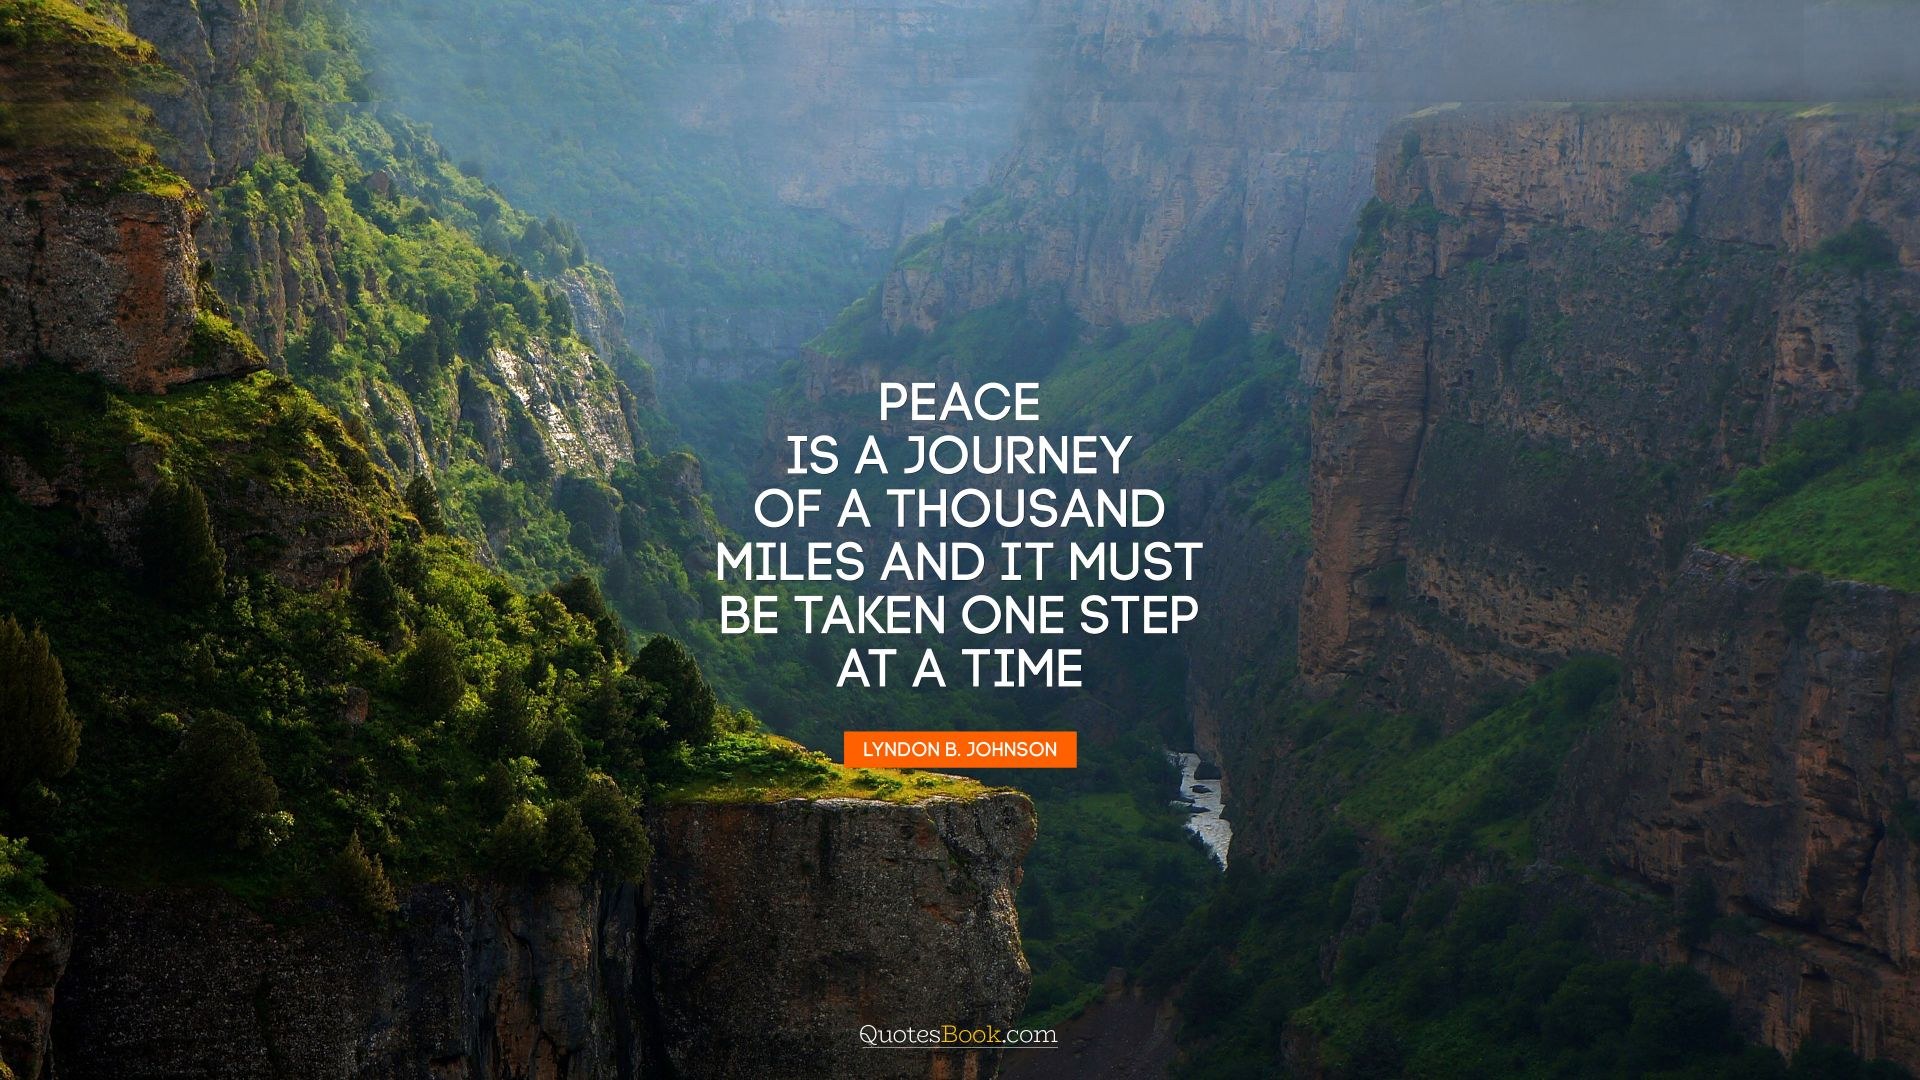 Peace is a journey of a thousand miles and it must be taken one step at a time. - Quote by Lyndon Baines Johnson